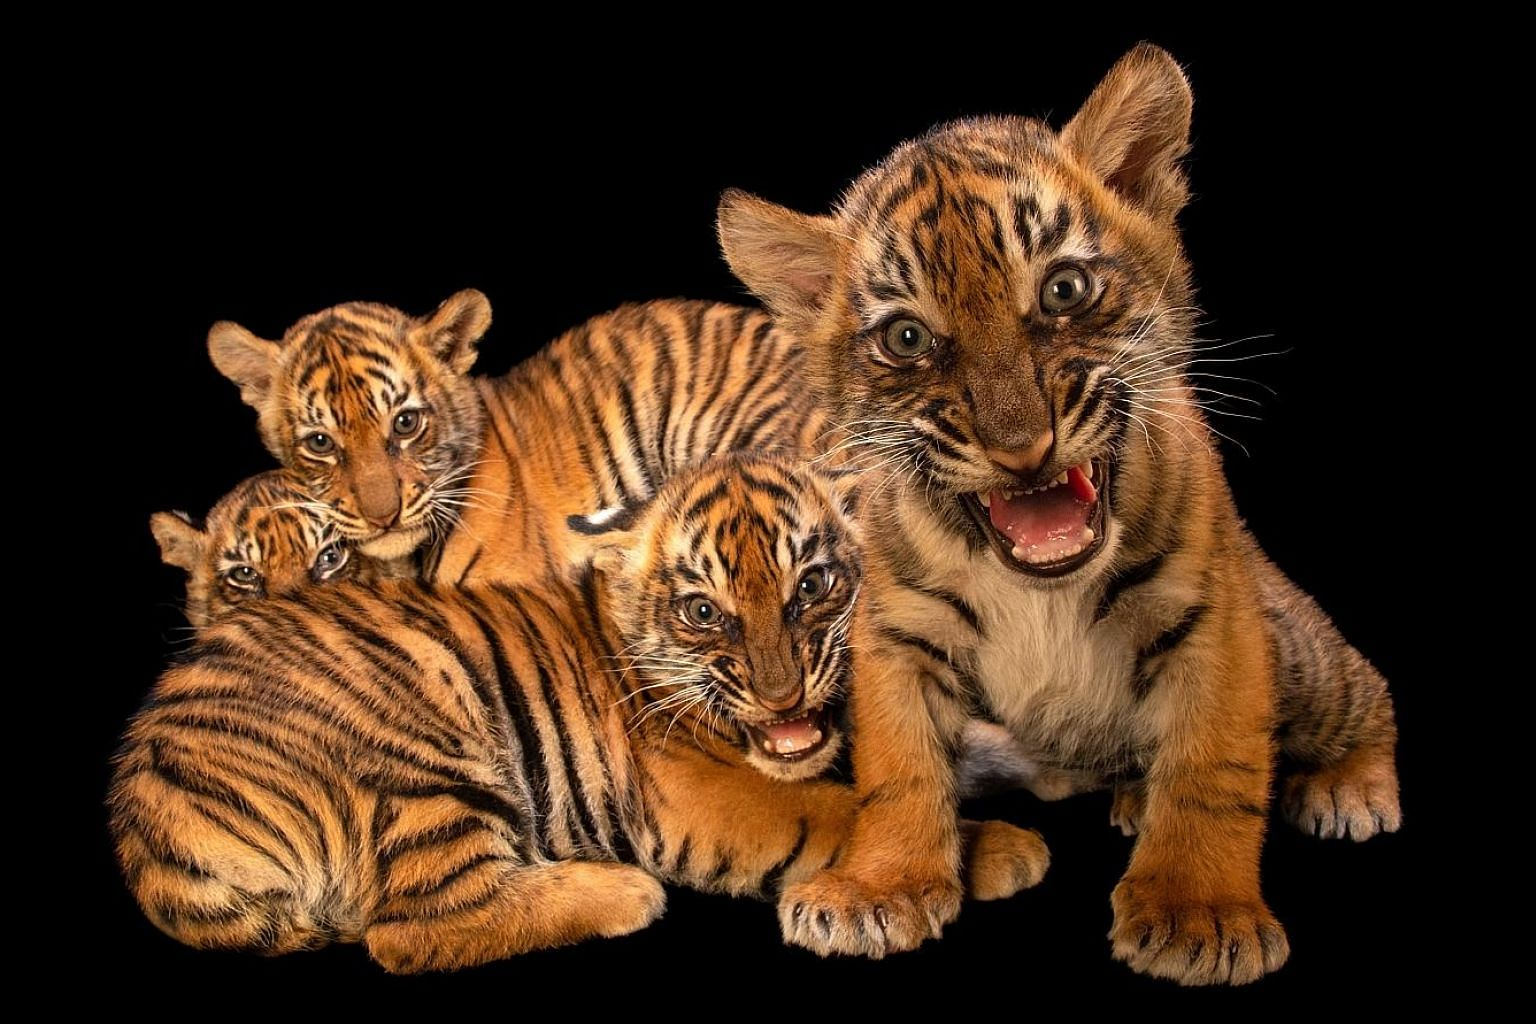 Photographer Joel Sartore (above) uses black or white backgrounds to shoot his subjects, such as Sumatran tiger cubs (left).